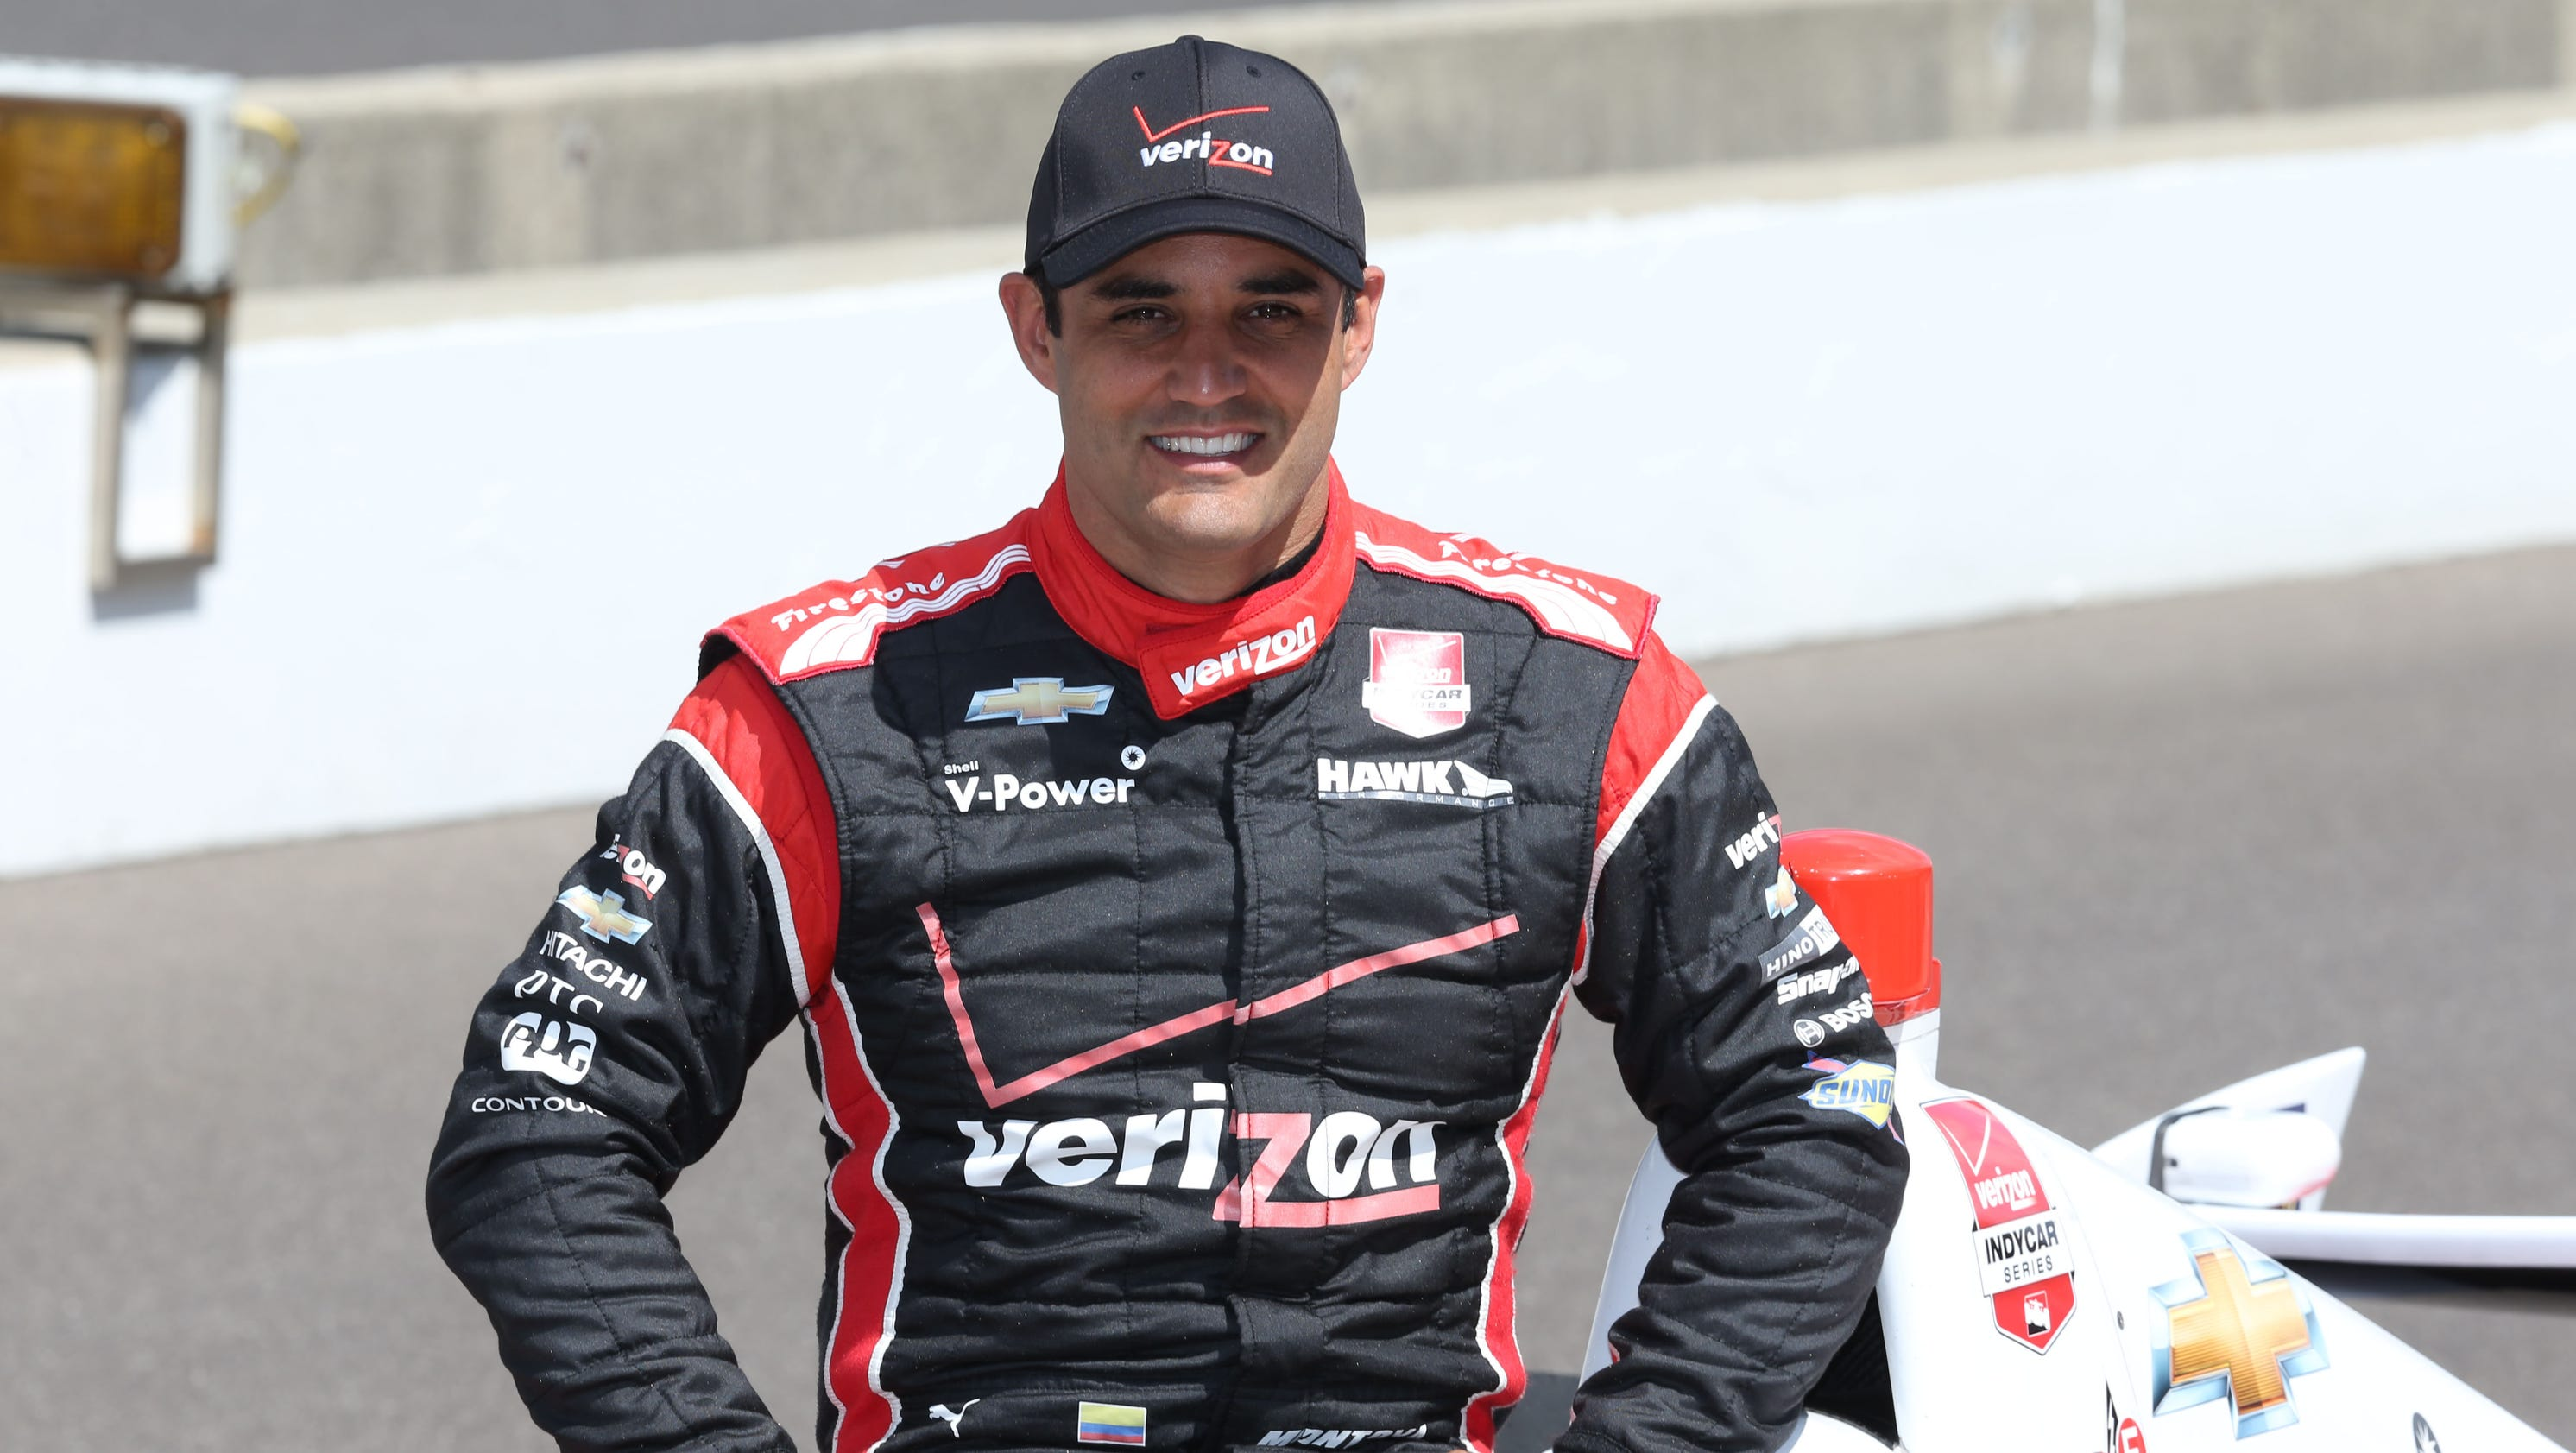 Juan Pablo Montoya returns to NASCAR aiming for win at ...